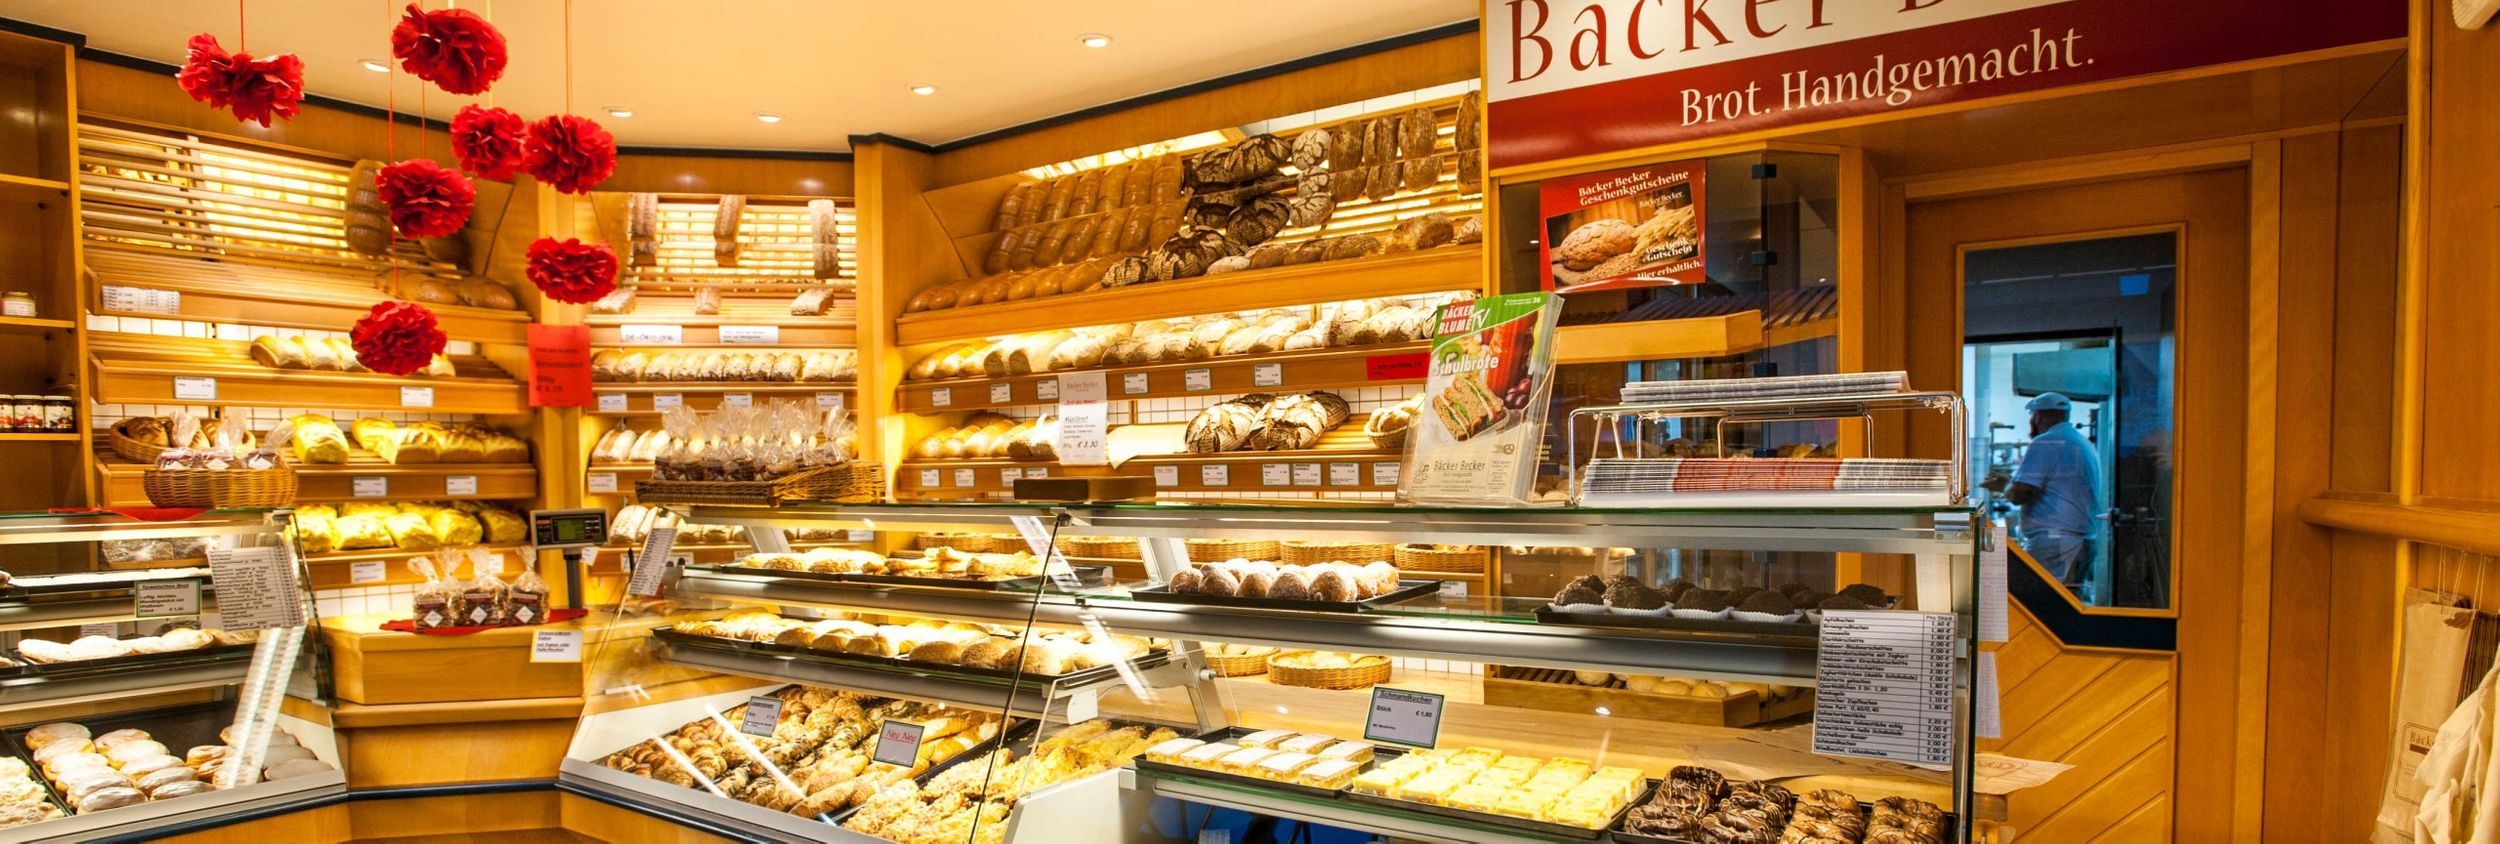 Bäckerei in Delmenhorst